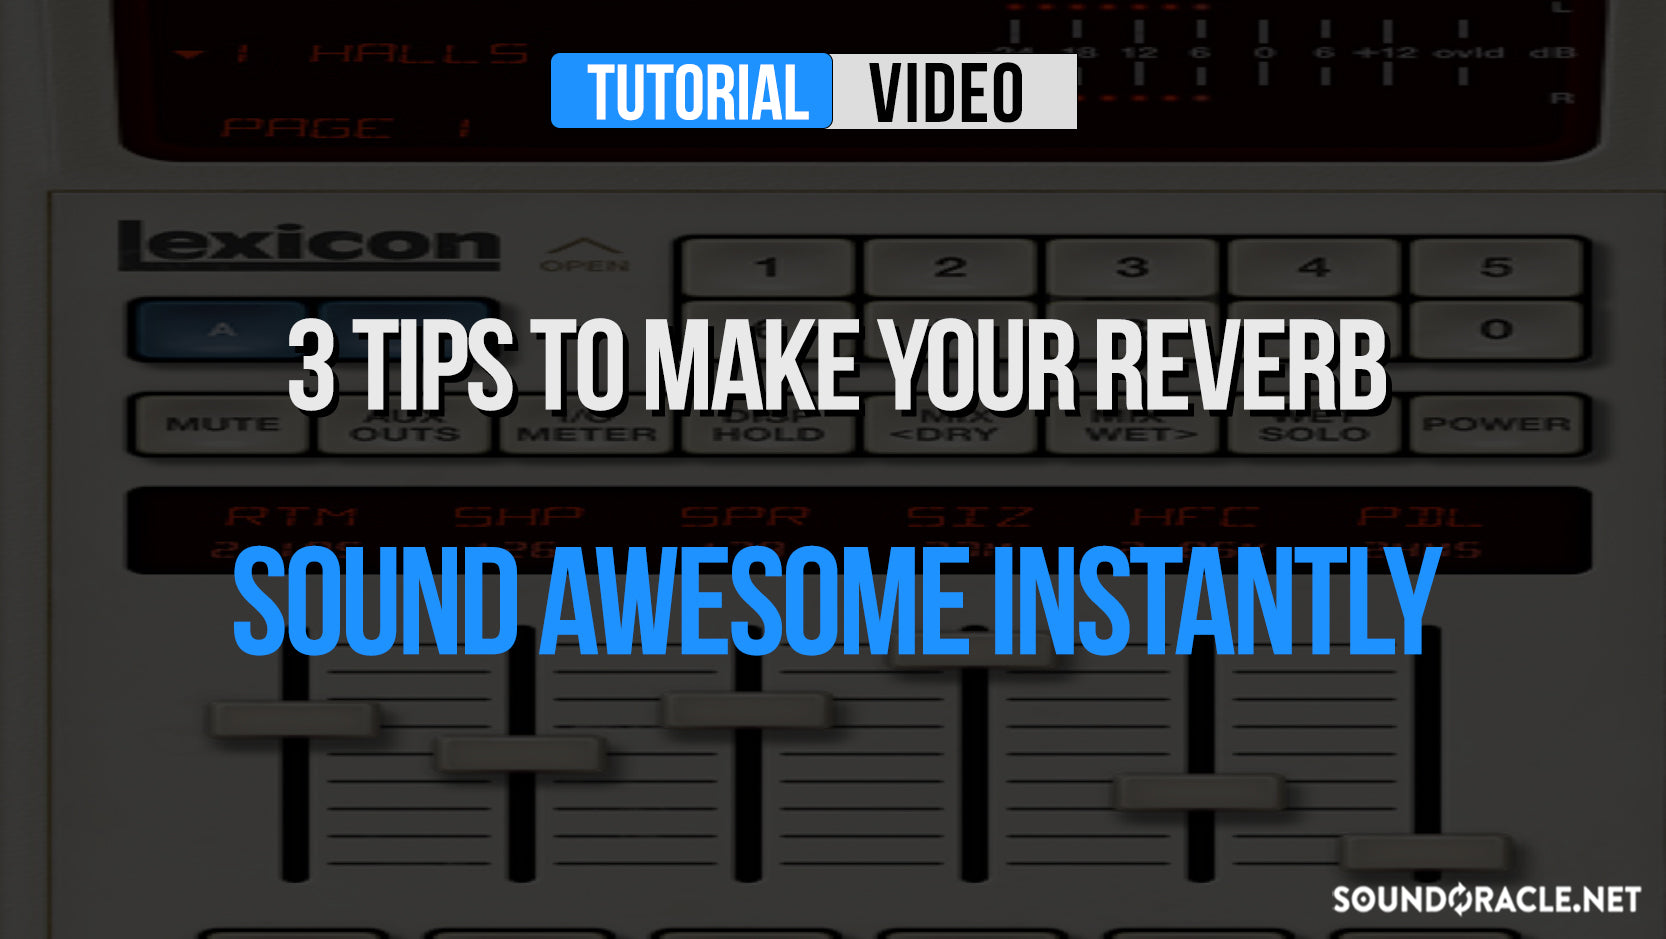 3 Tips To Make Your Reverb Sound Awesome Instantly